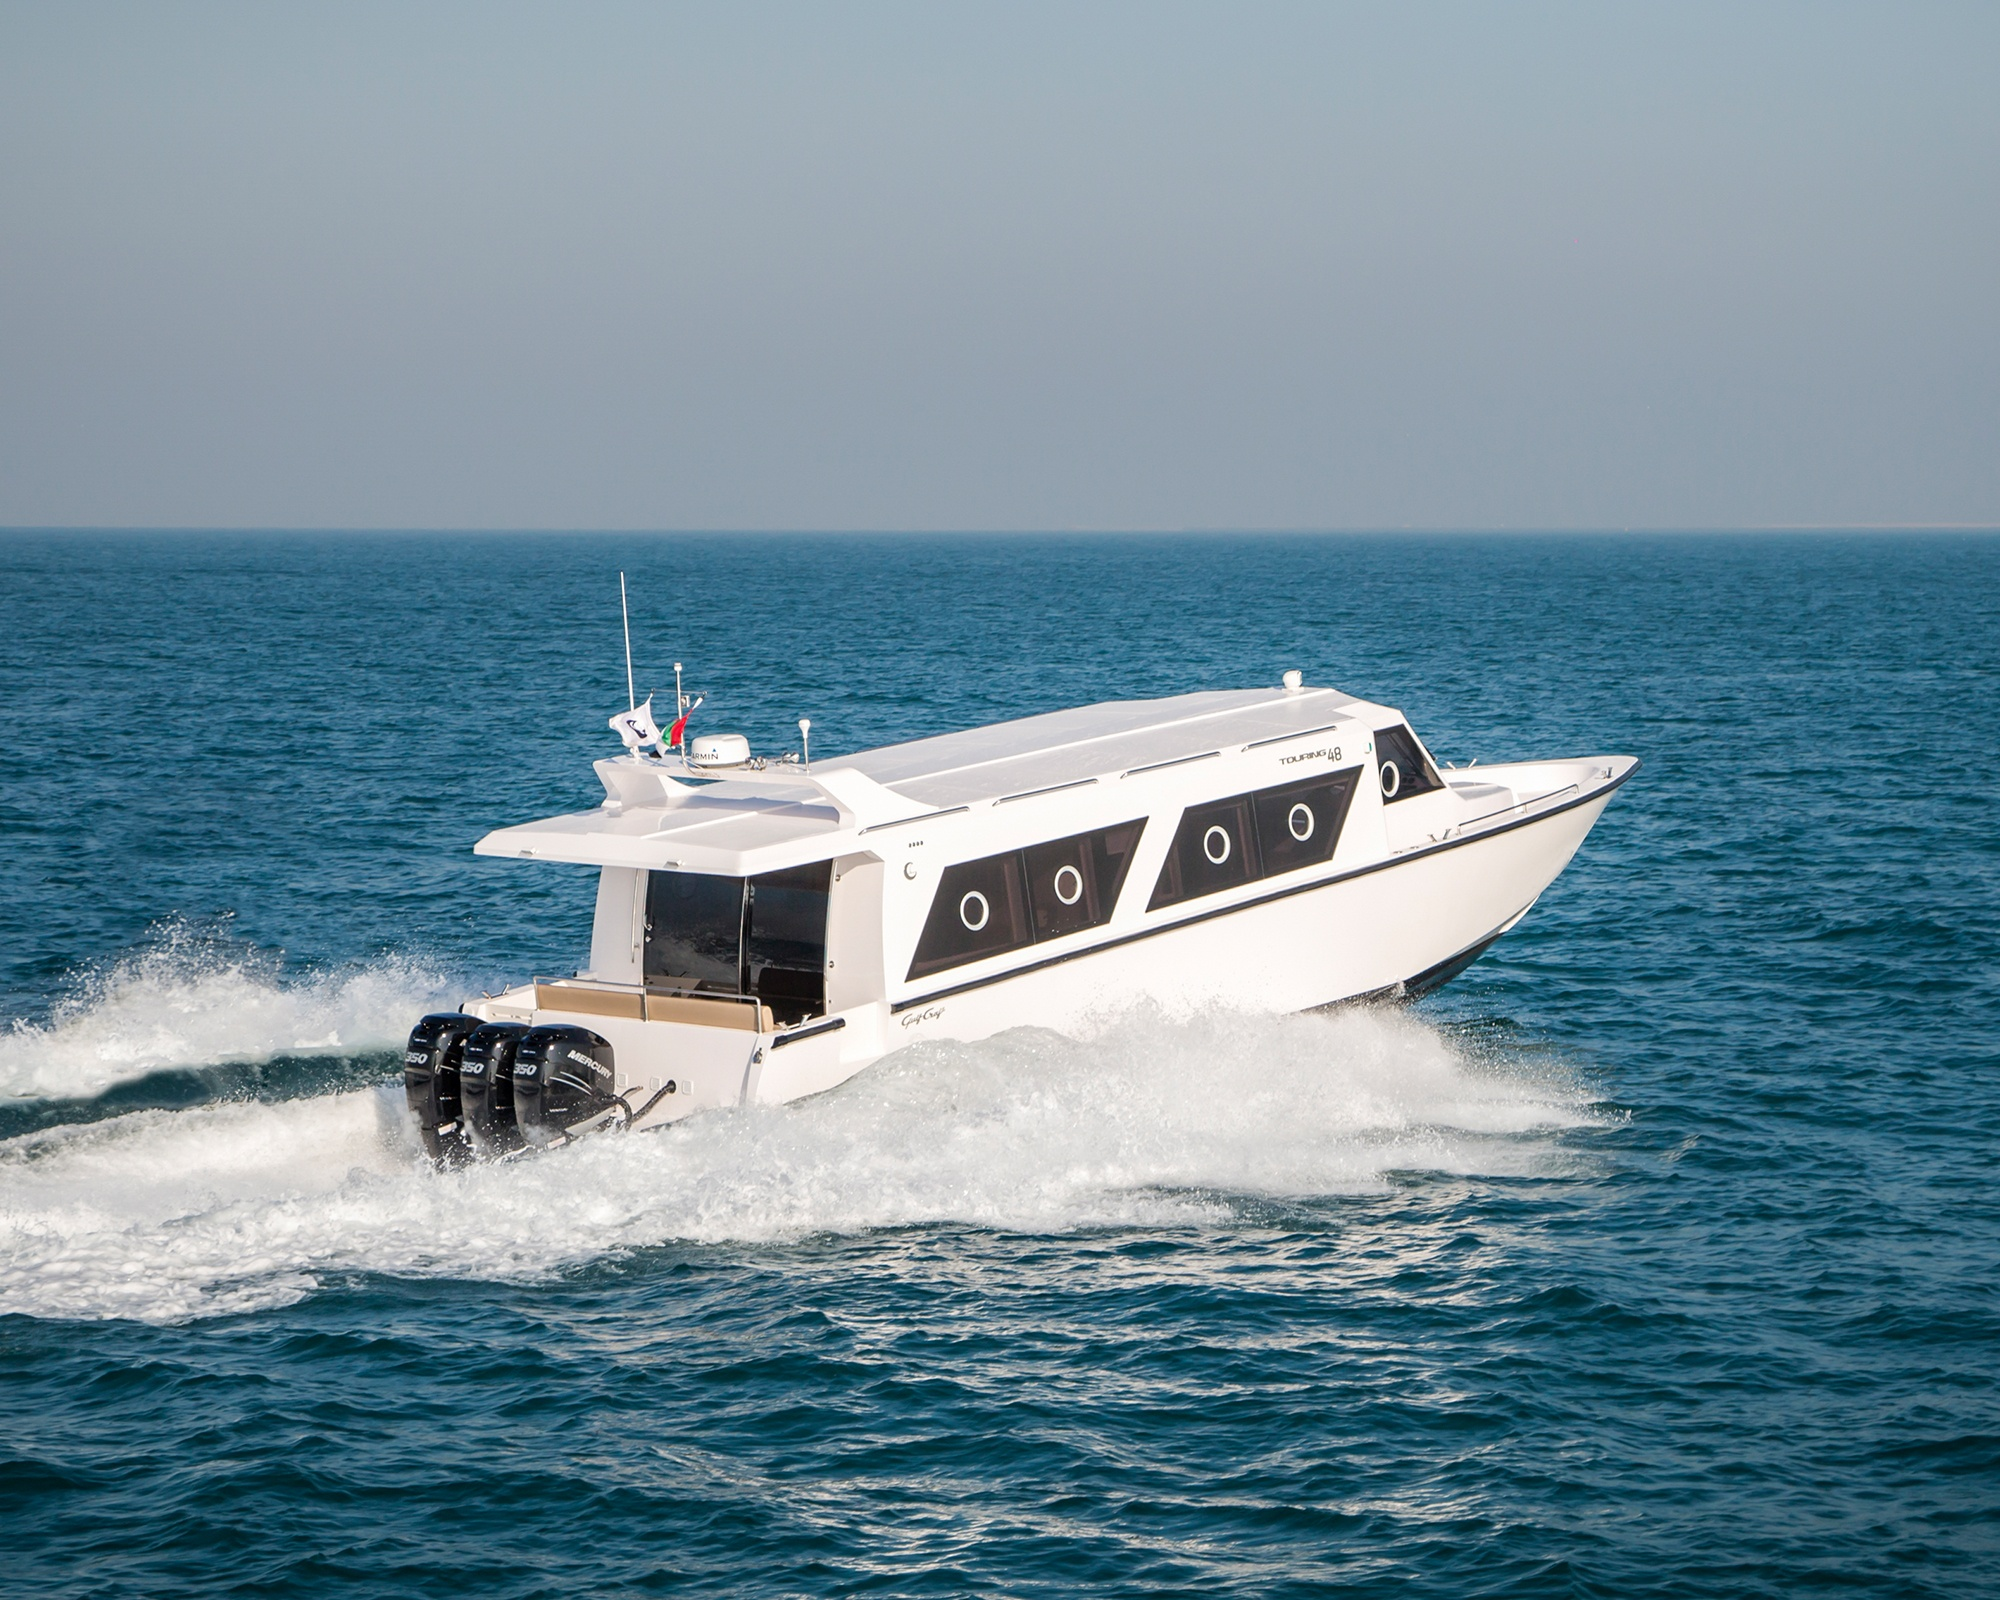 The latest utility boat model- Touring 48